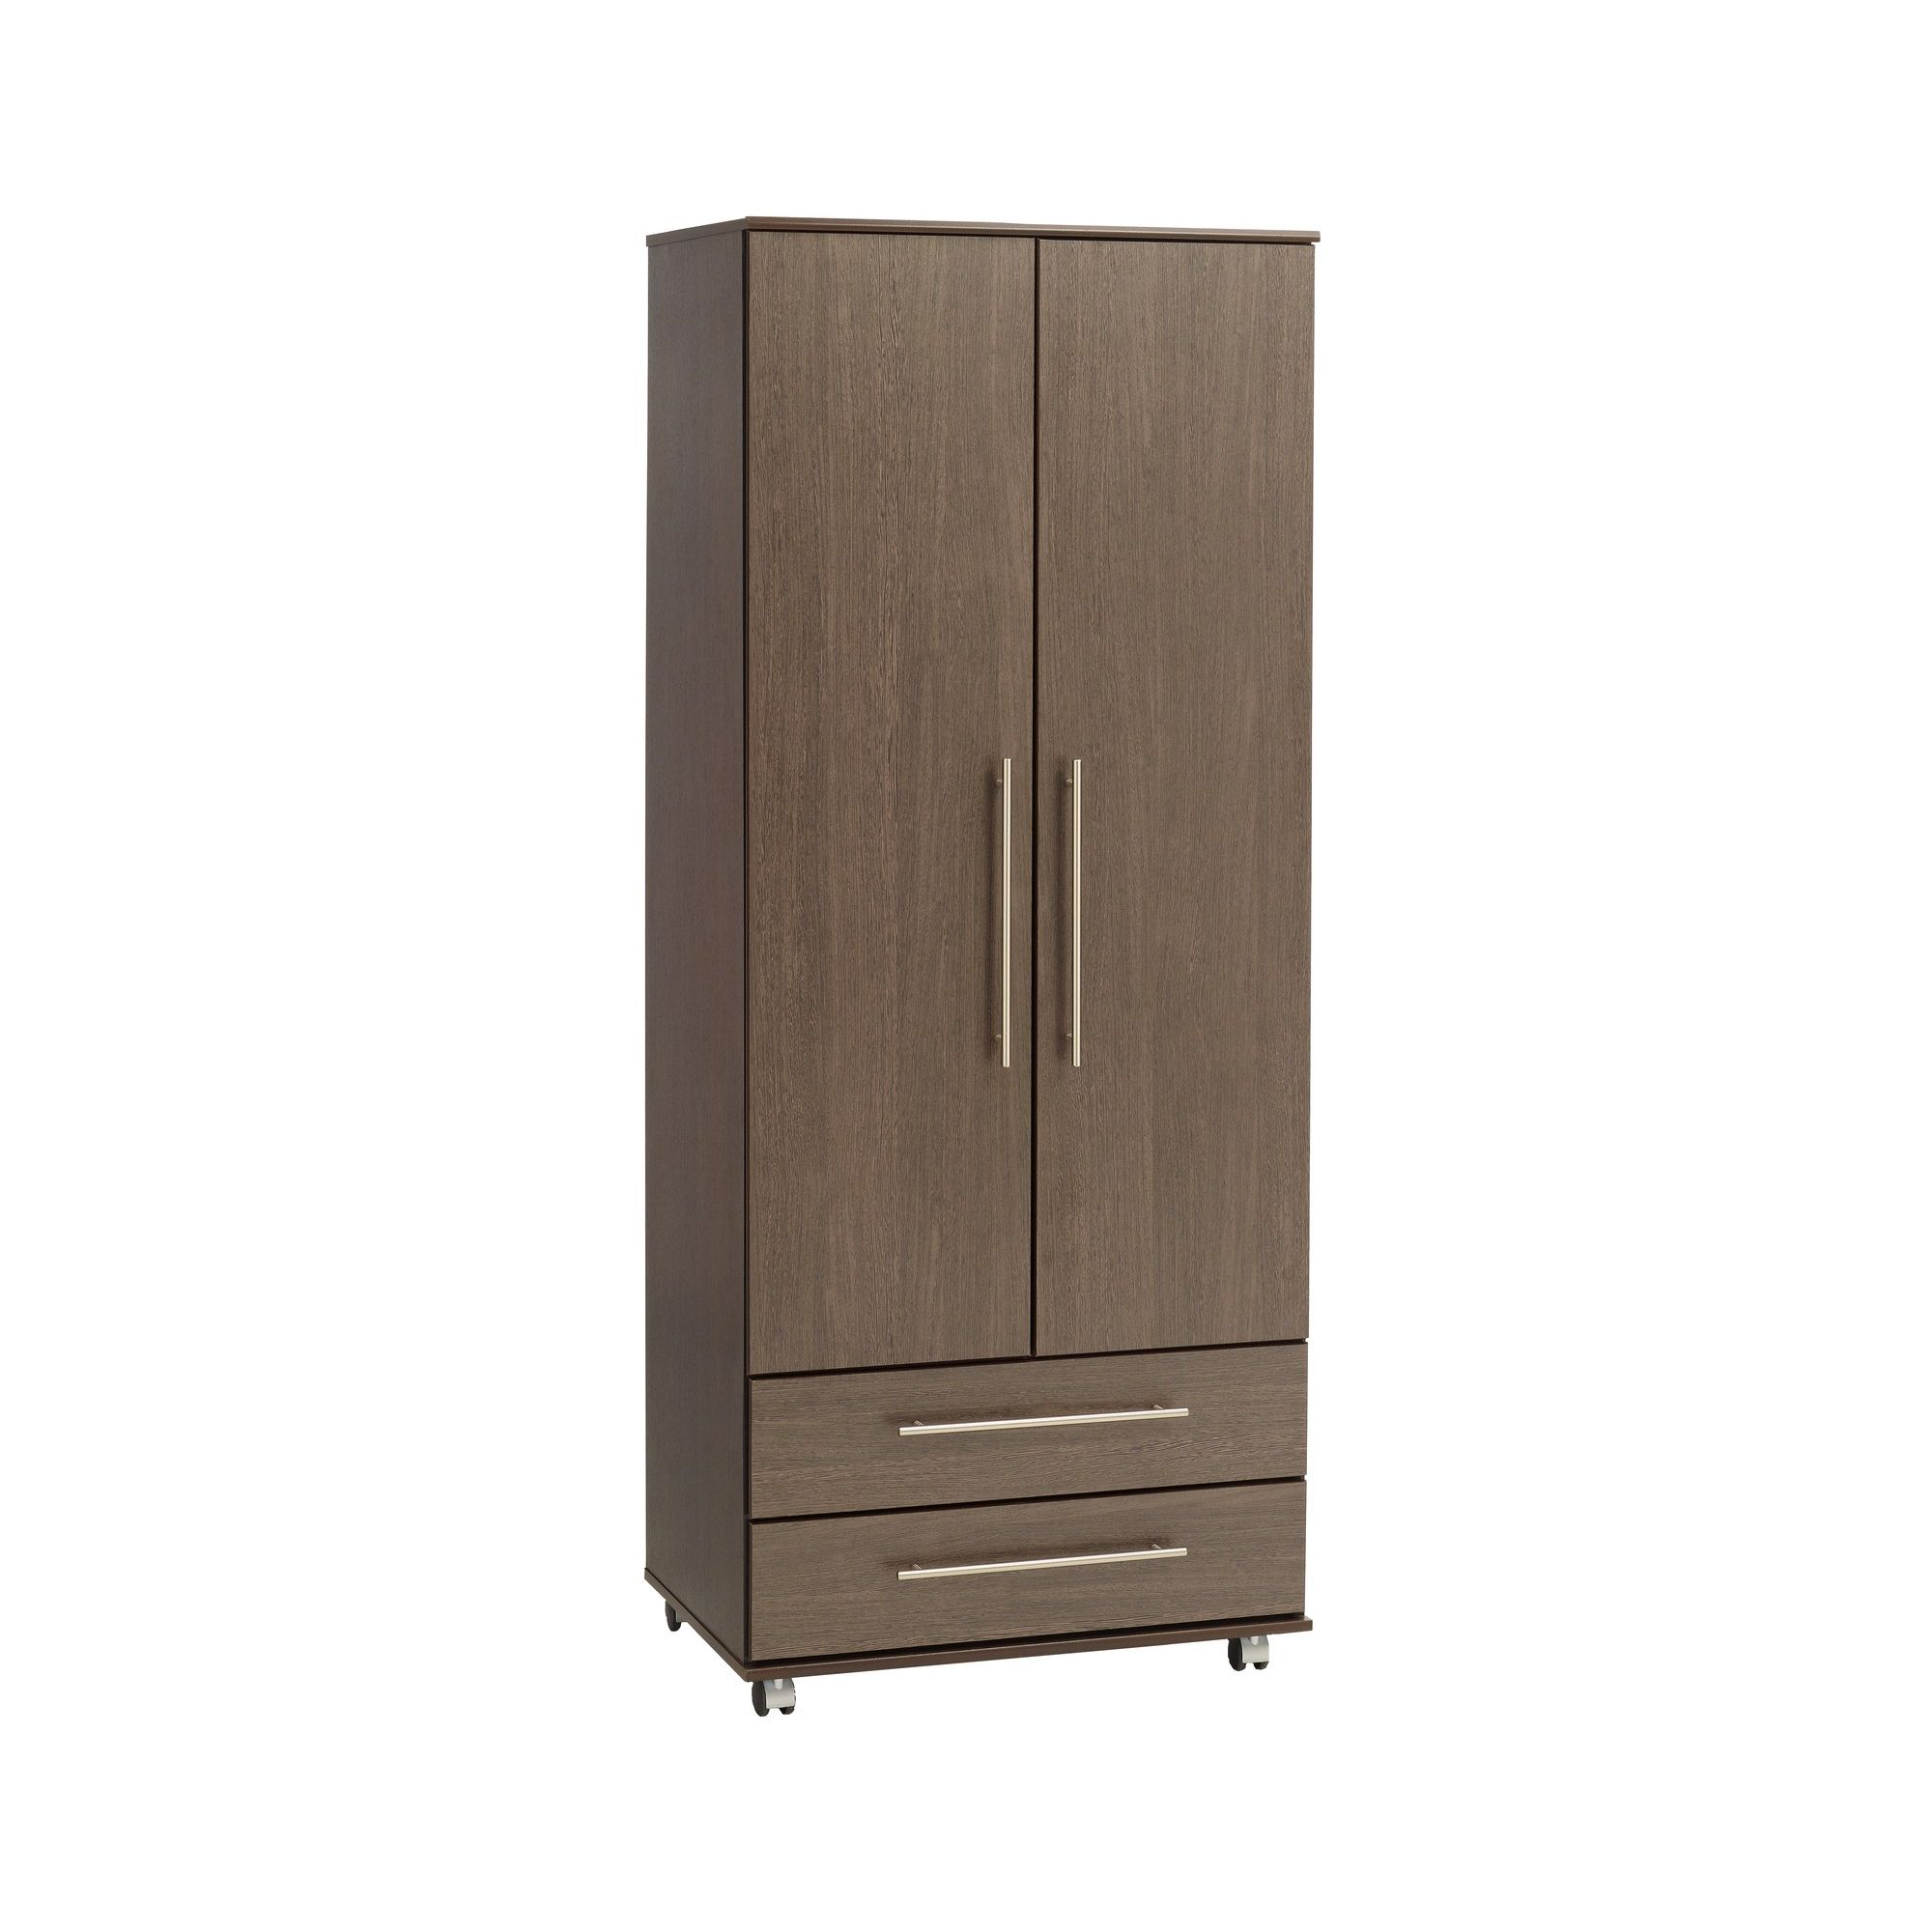 Ideal Furniture New York Combi Wardrobe - Beech at Tesco Direct